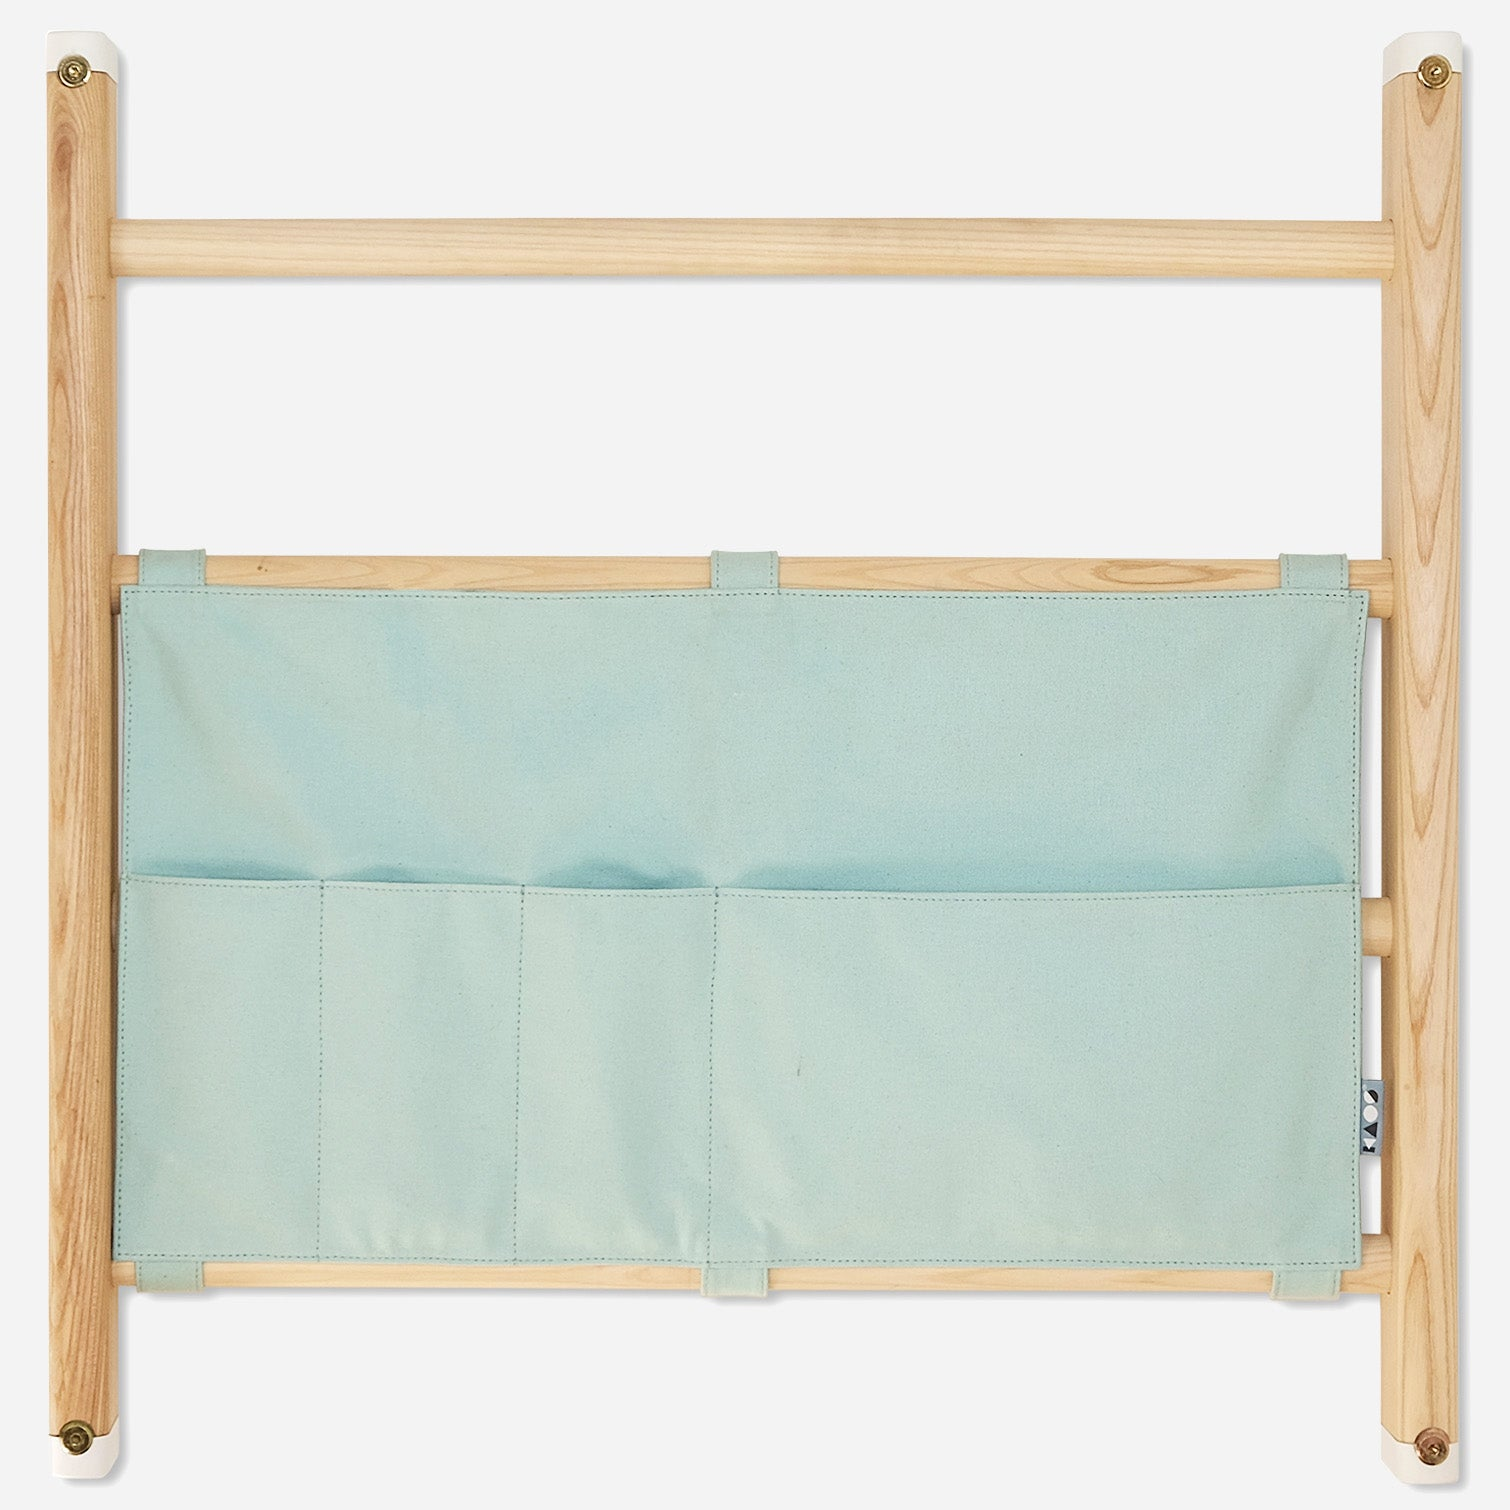 Mint Endeløs Canvas Organiser